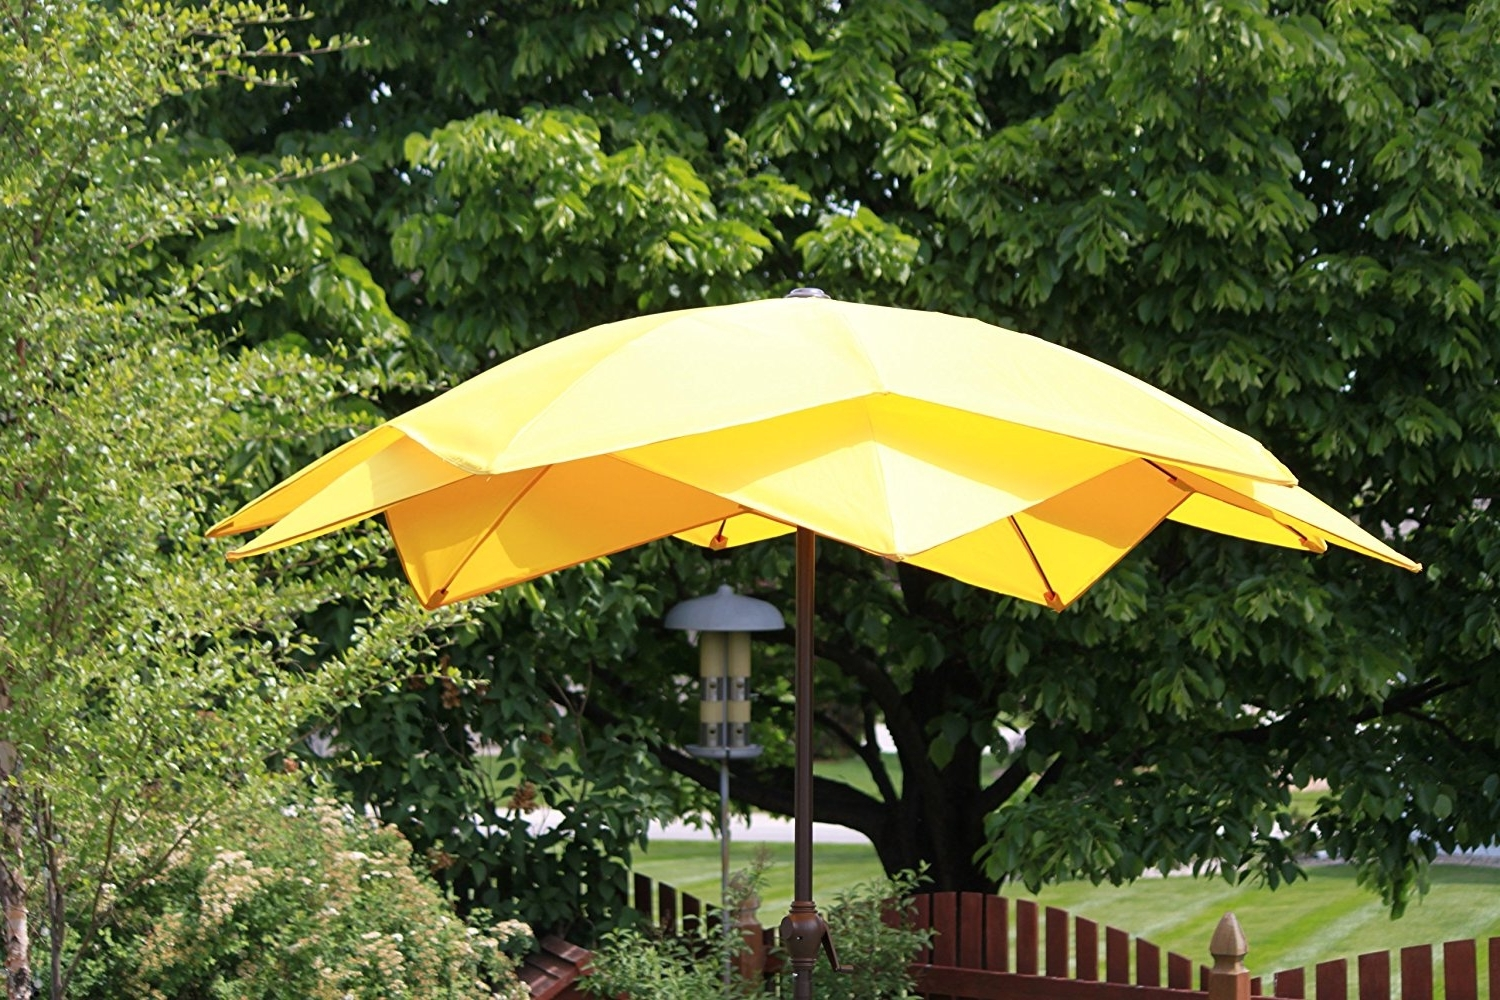 Elegant Wind Resistant Patio Umbrella Uk F36X On Most Luxury Small Throughout Preferred Patio Umbrellas For Windy Locations (View 3 of 20)